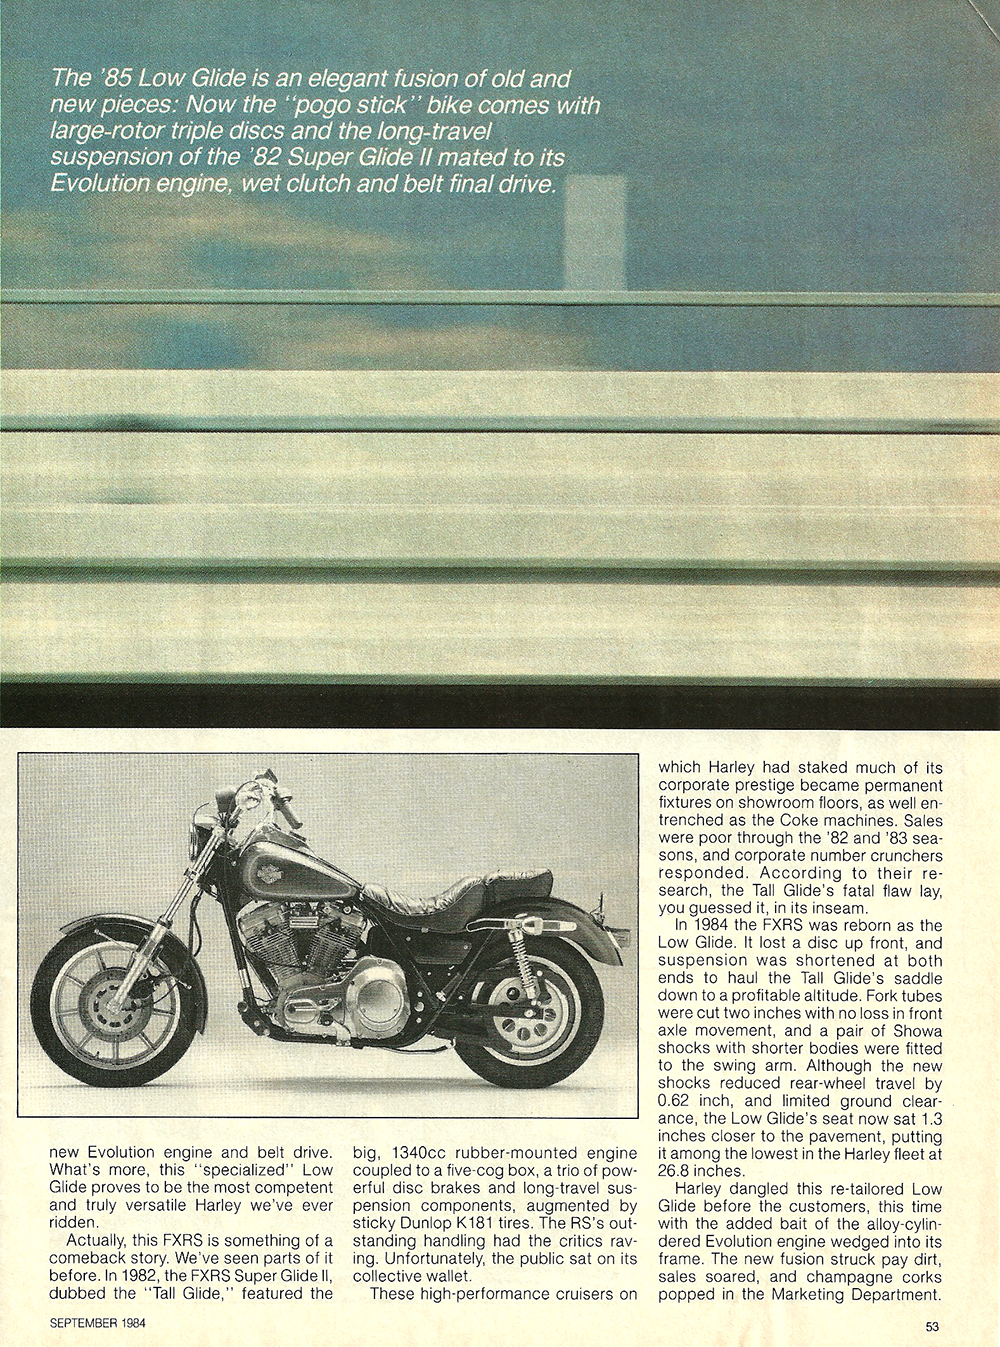 1984 Harley-Davidson Low Glide FXRS road test 4.jpg